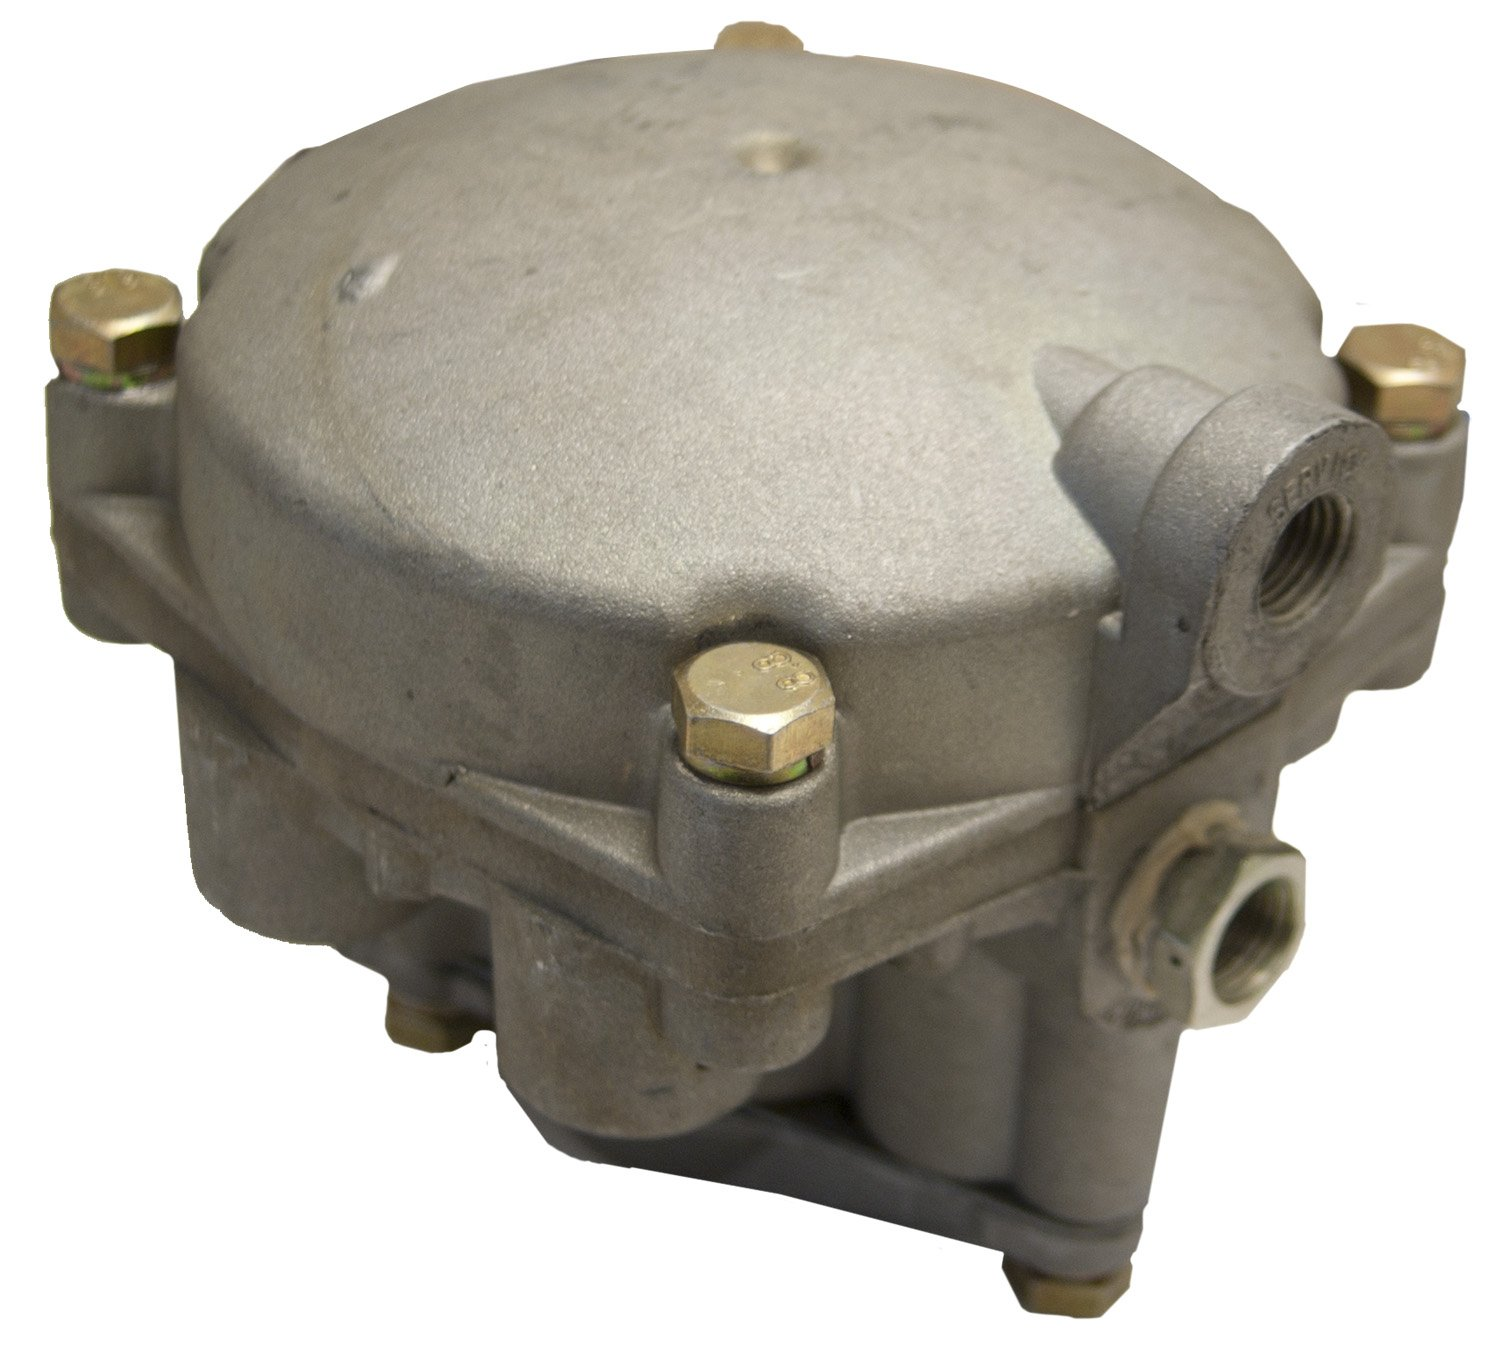 RE-6 Style Air Valve for Heavy Duty Semi Trucks and Trailers GPD